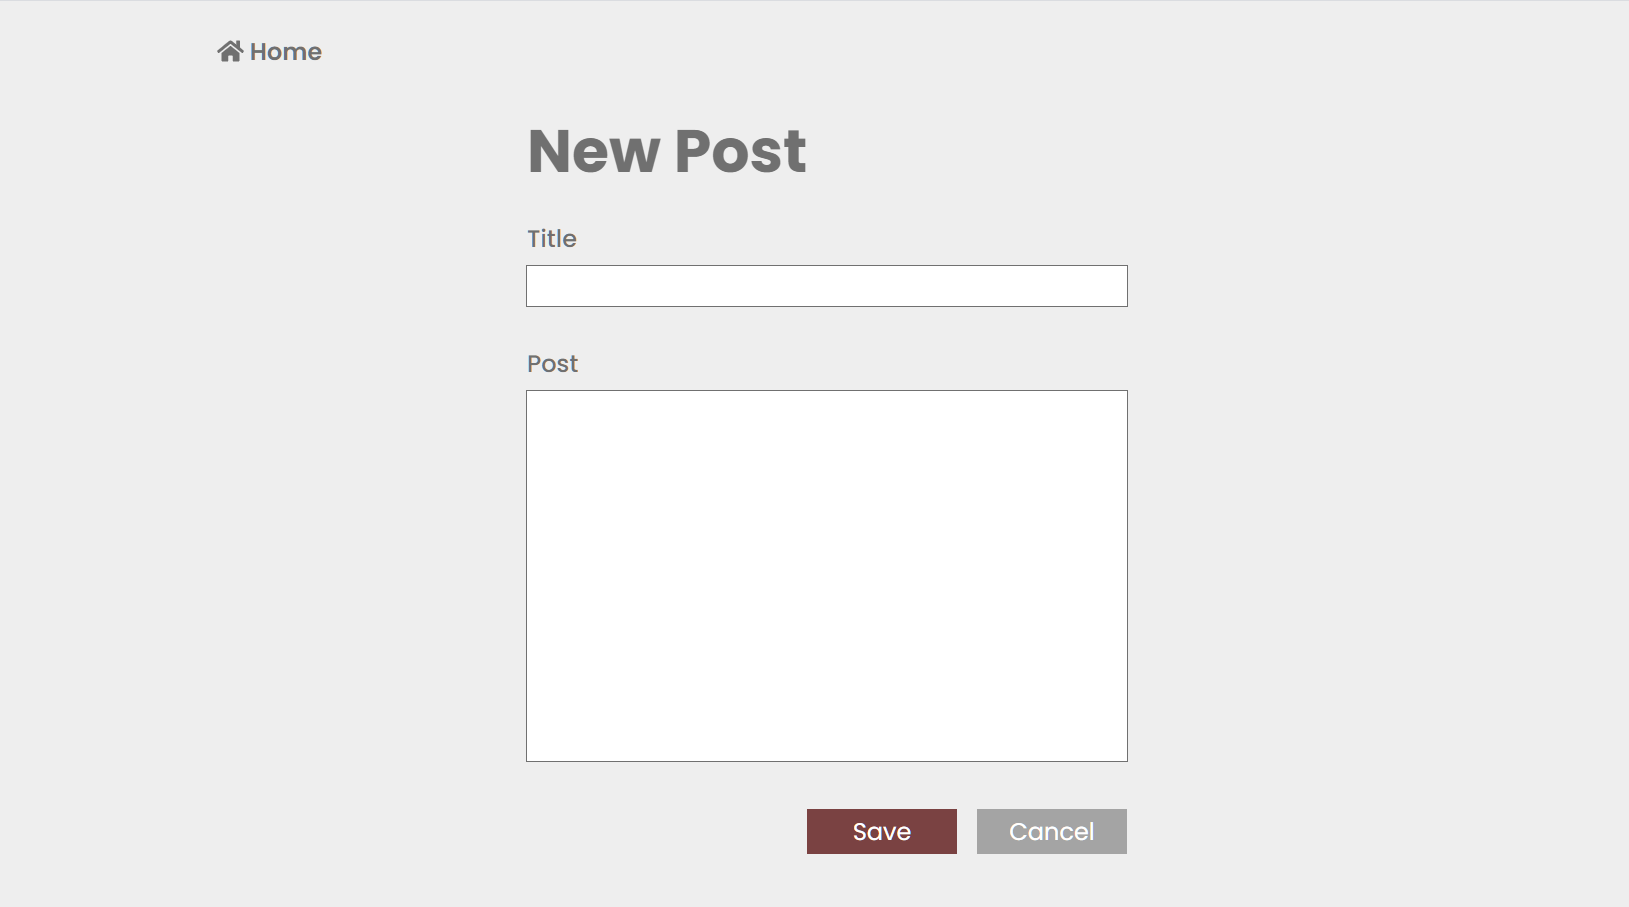 Form Application - Create New Post